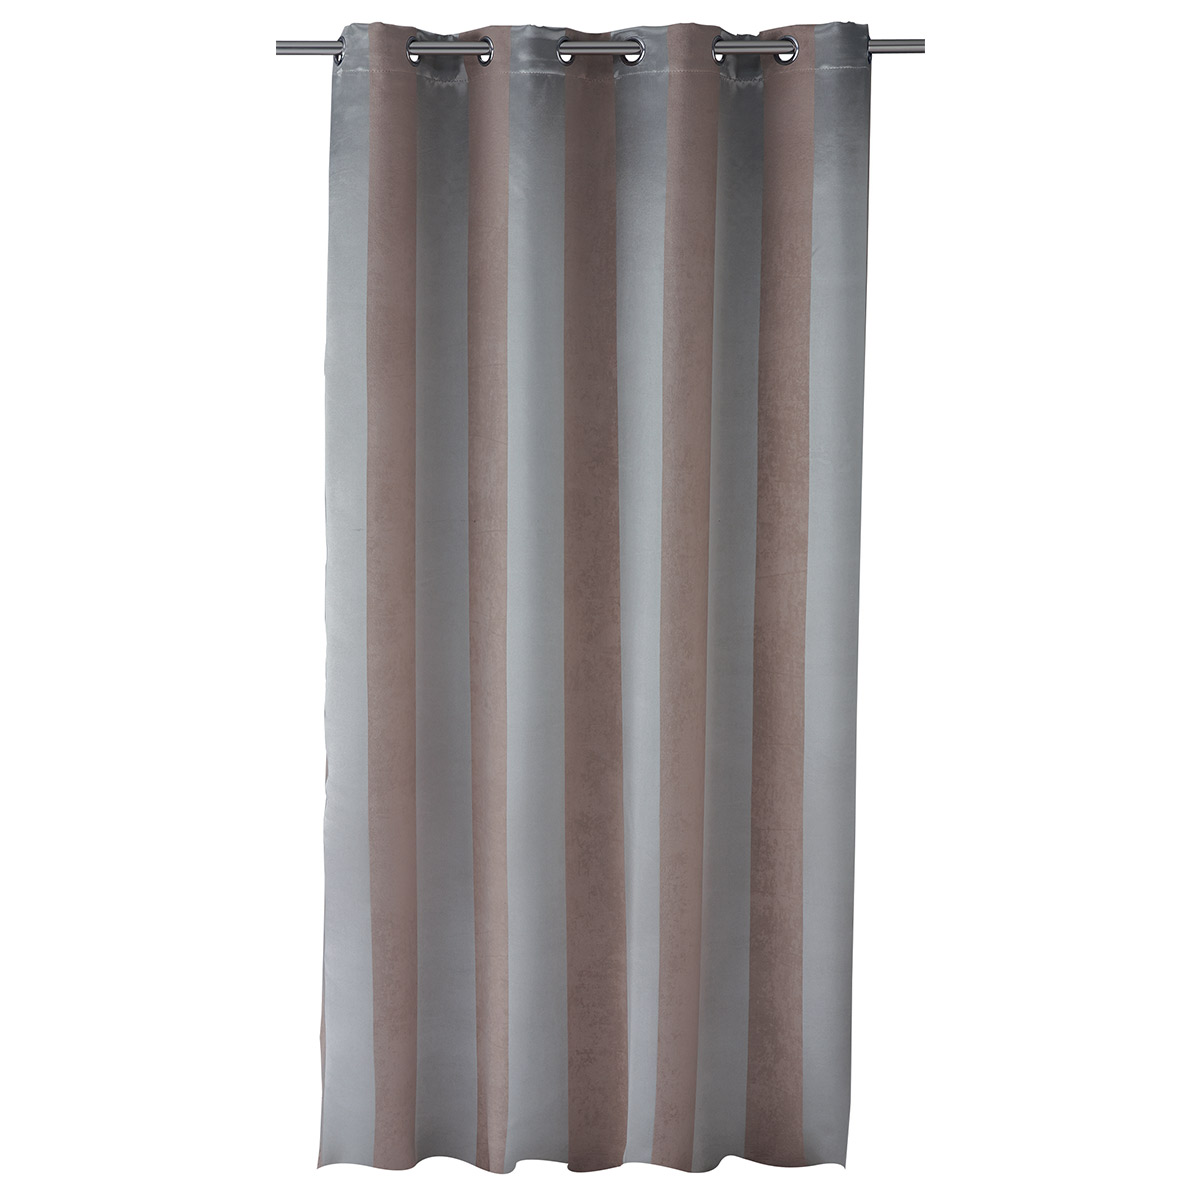 Rideau Obscurcissant Bandes Satin (Taupe)